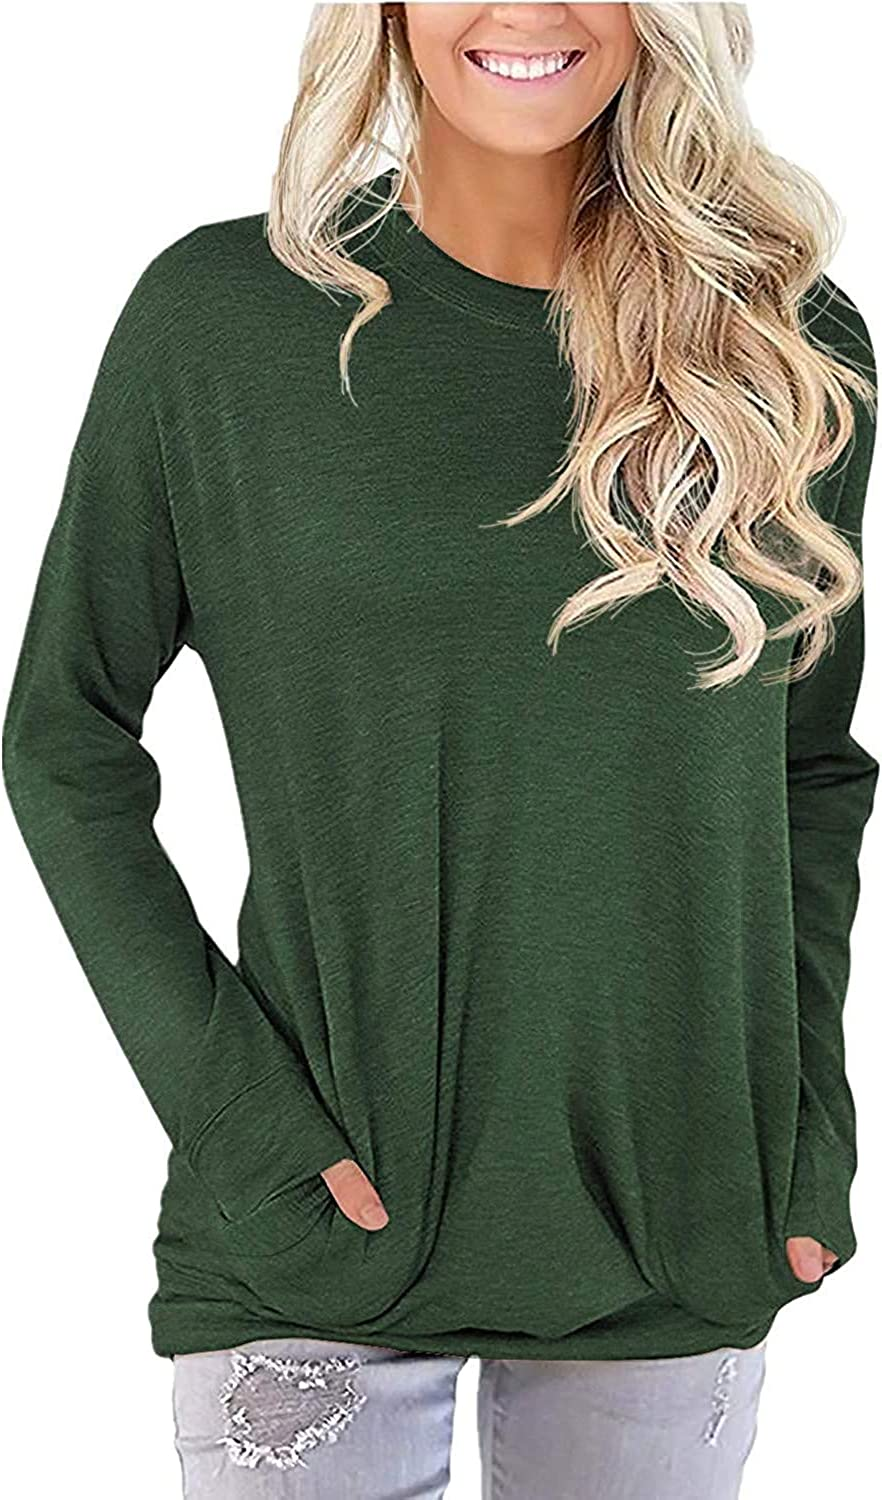 LaLaLa Women's Casual Loose Fit Tunic Tops Long Sleeve Comfy Sweatshirts Pullover T-Shirts Blouses